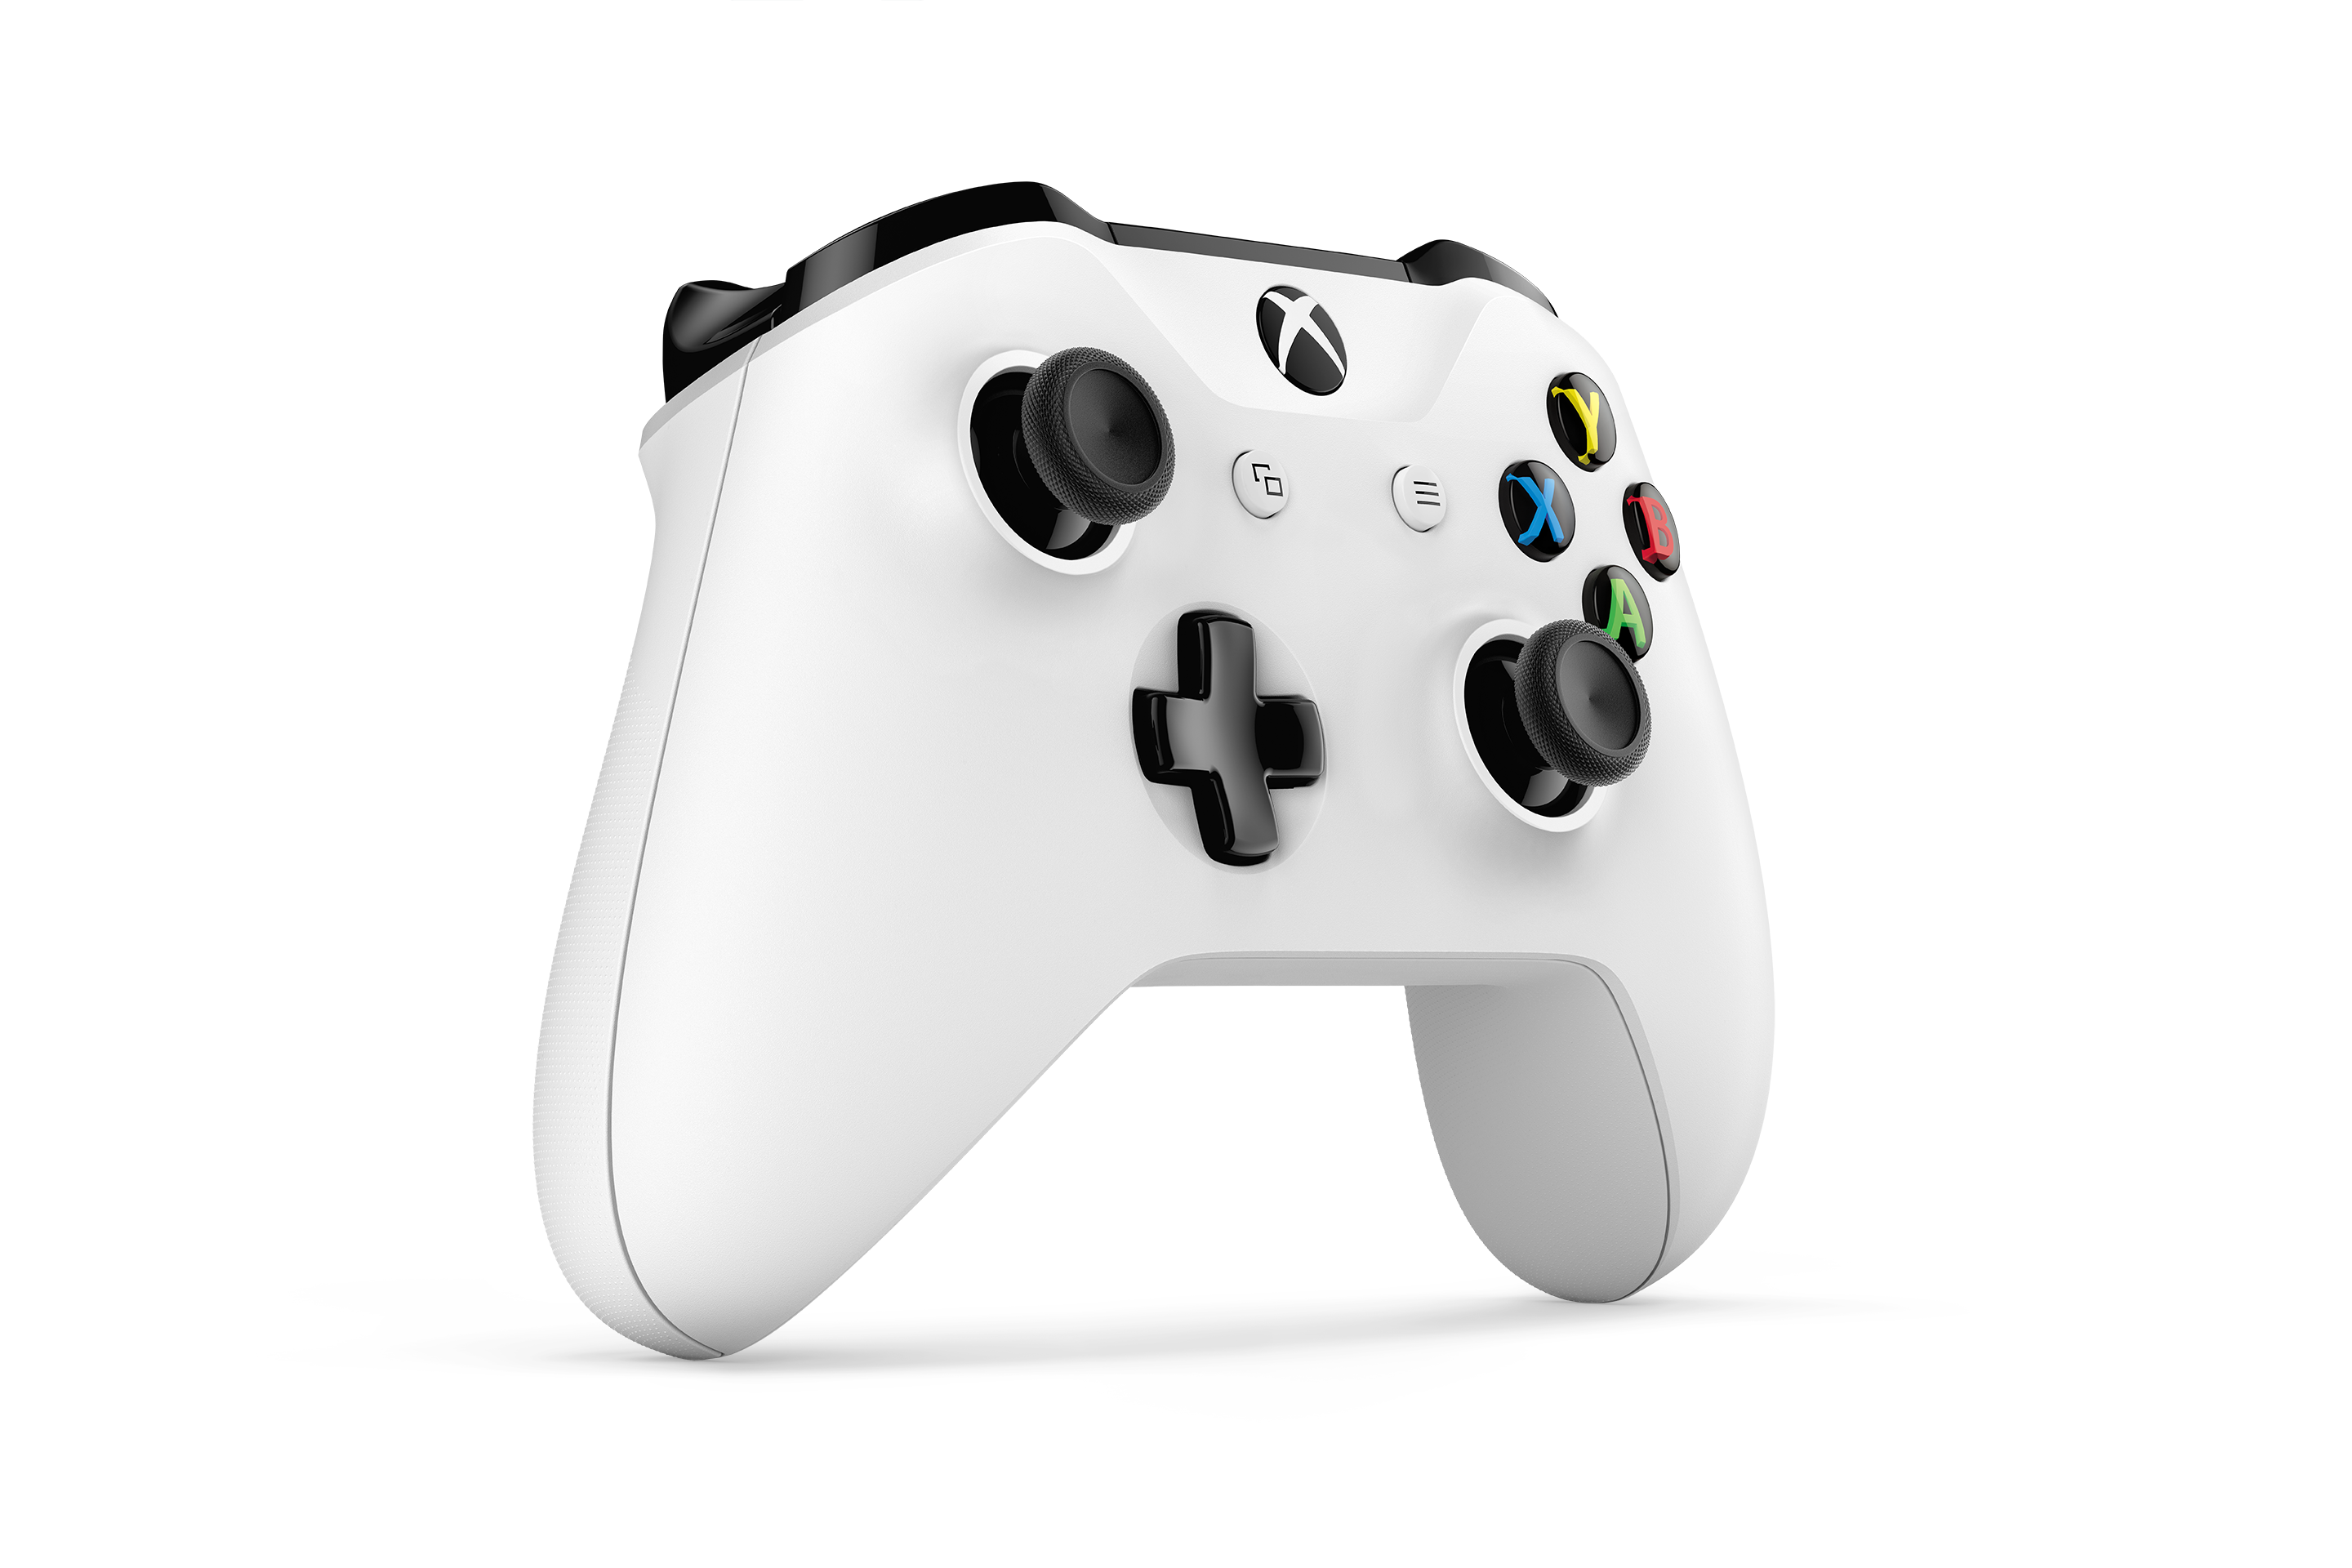 Xbox one controller png. A closer look at